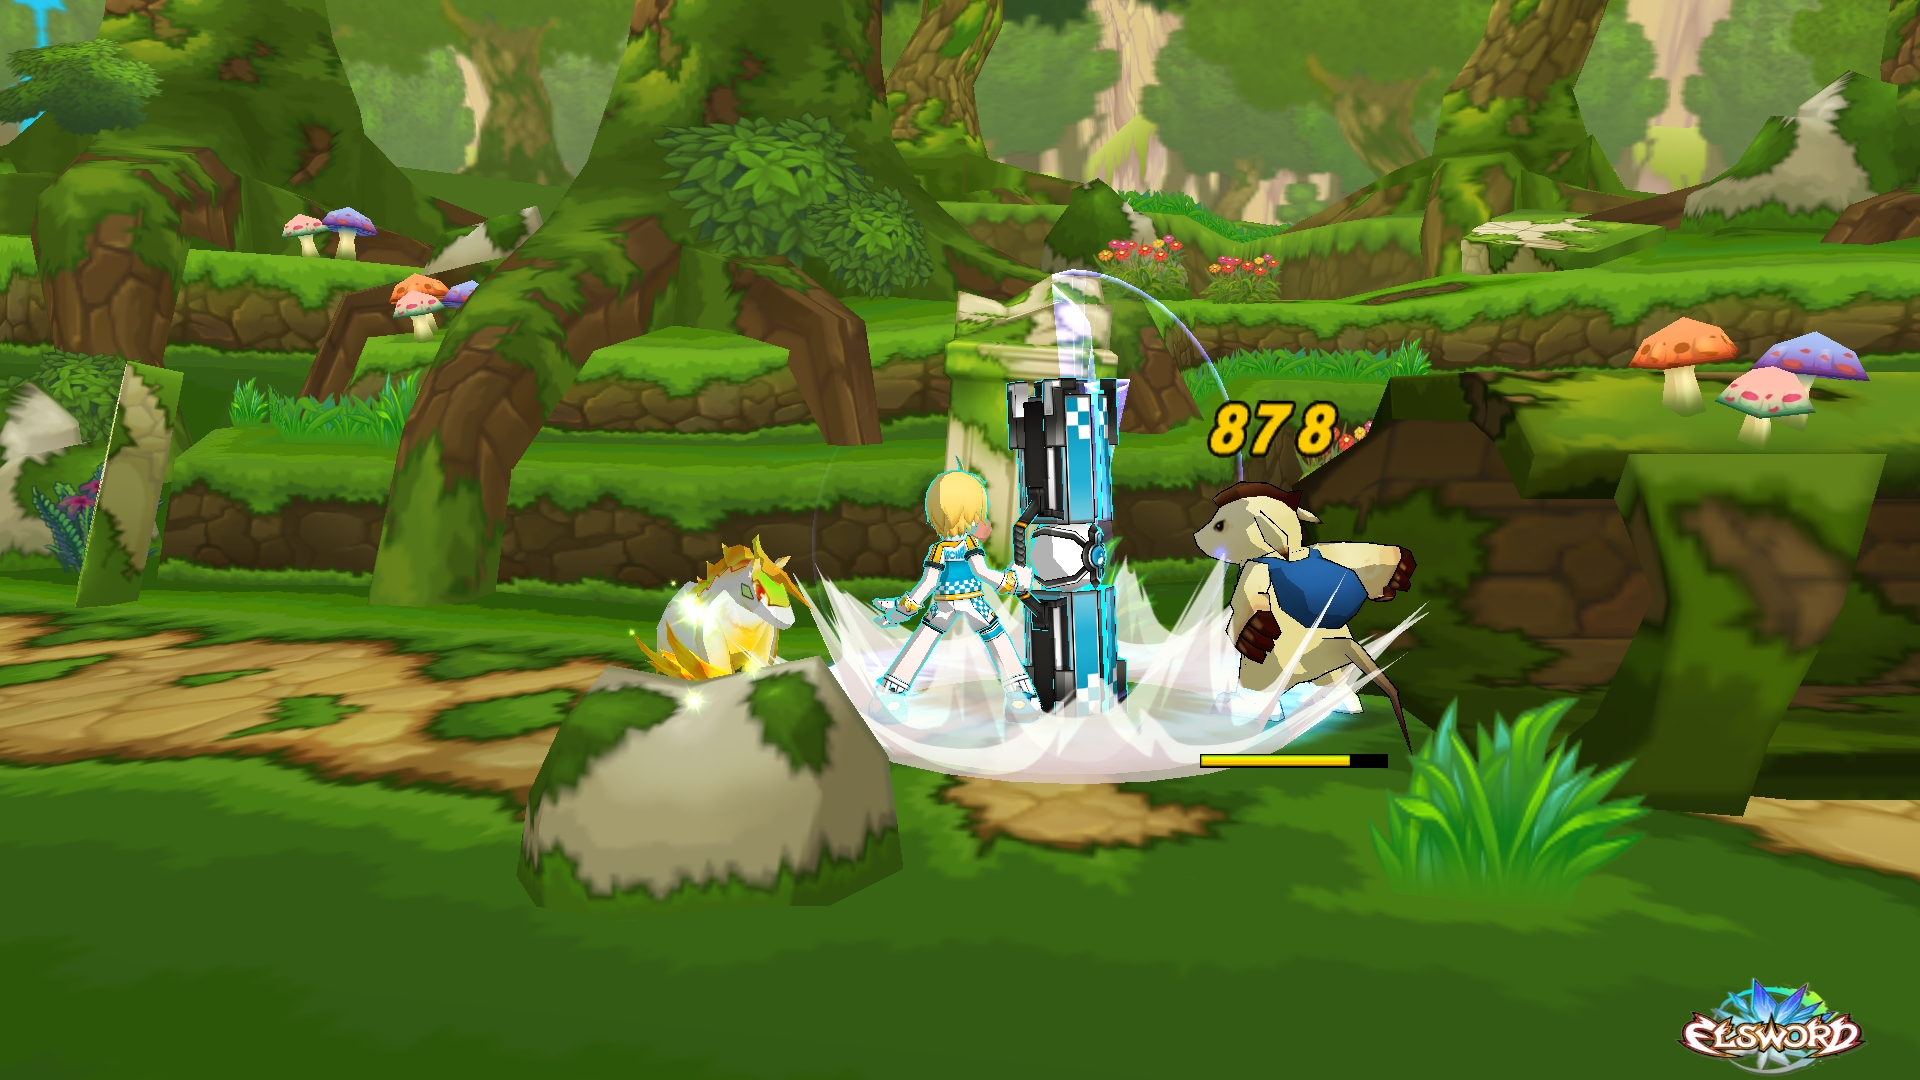 elsword_screenshot01